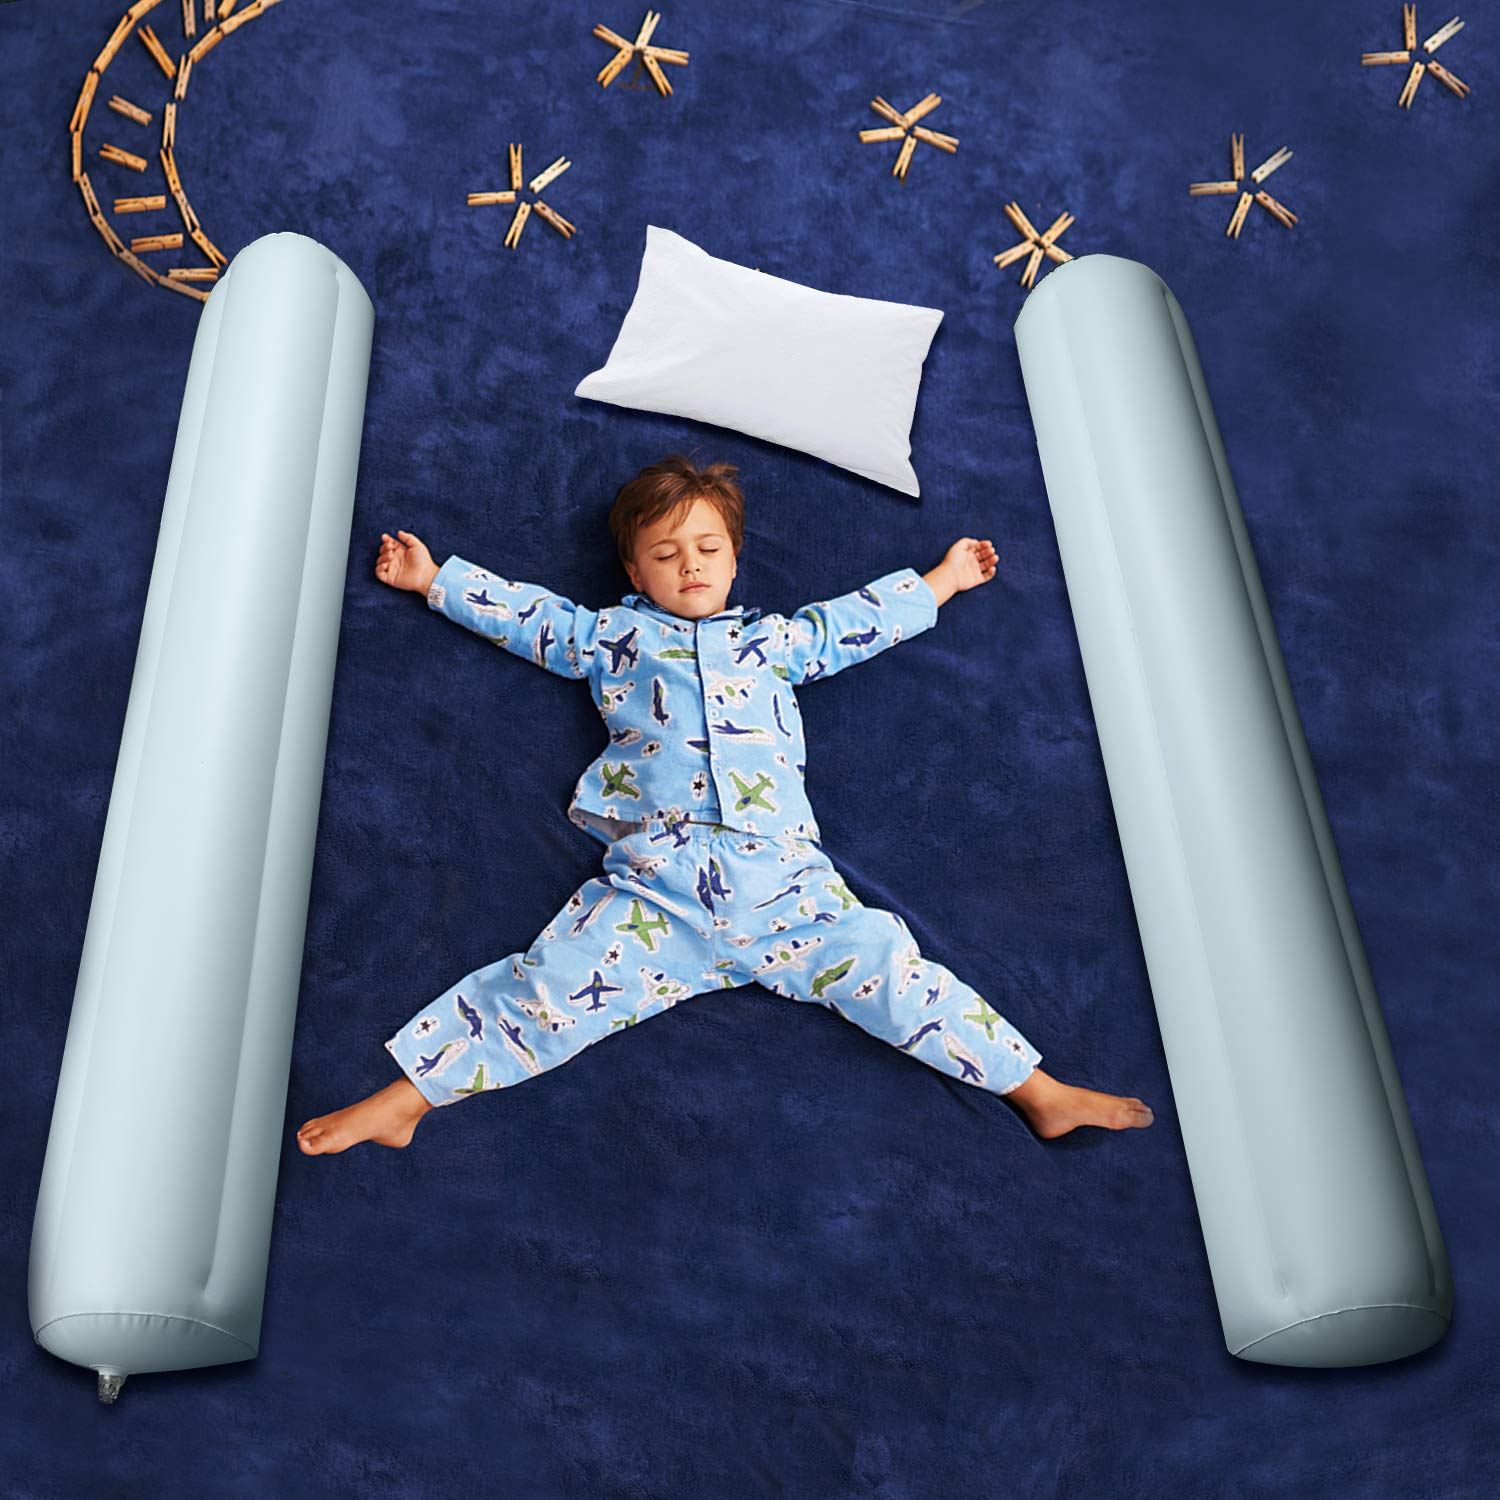 Toddler Bed Rail Bumpers, Carttiya Inflatable Kid's Bed Safety Rails, Water-Proof & Portable for Travel, Double Rails